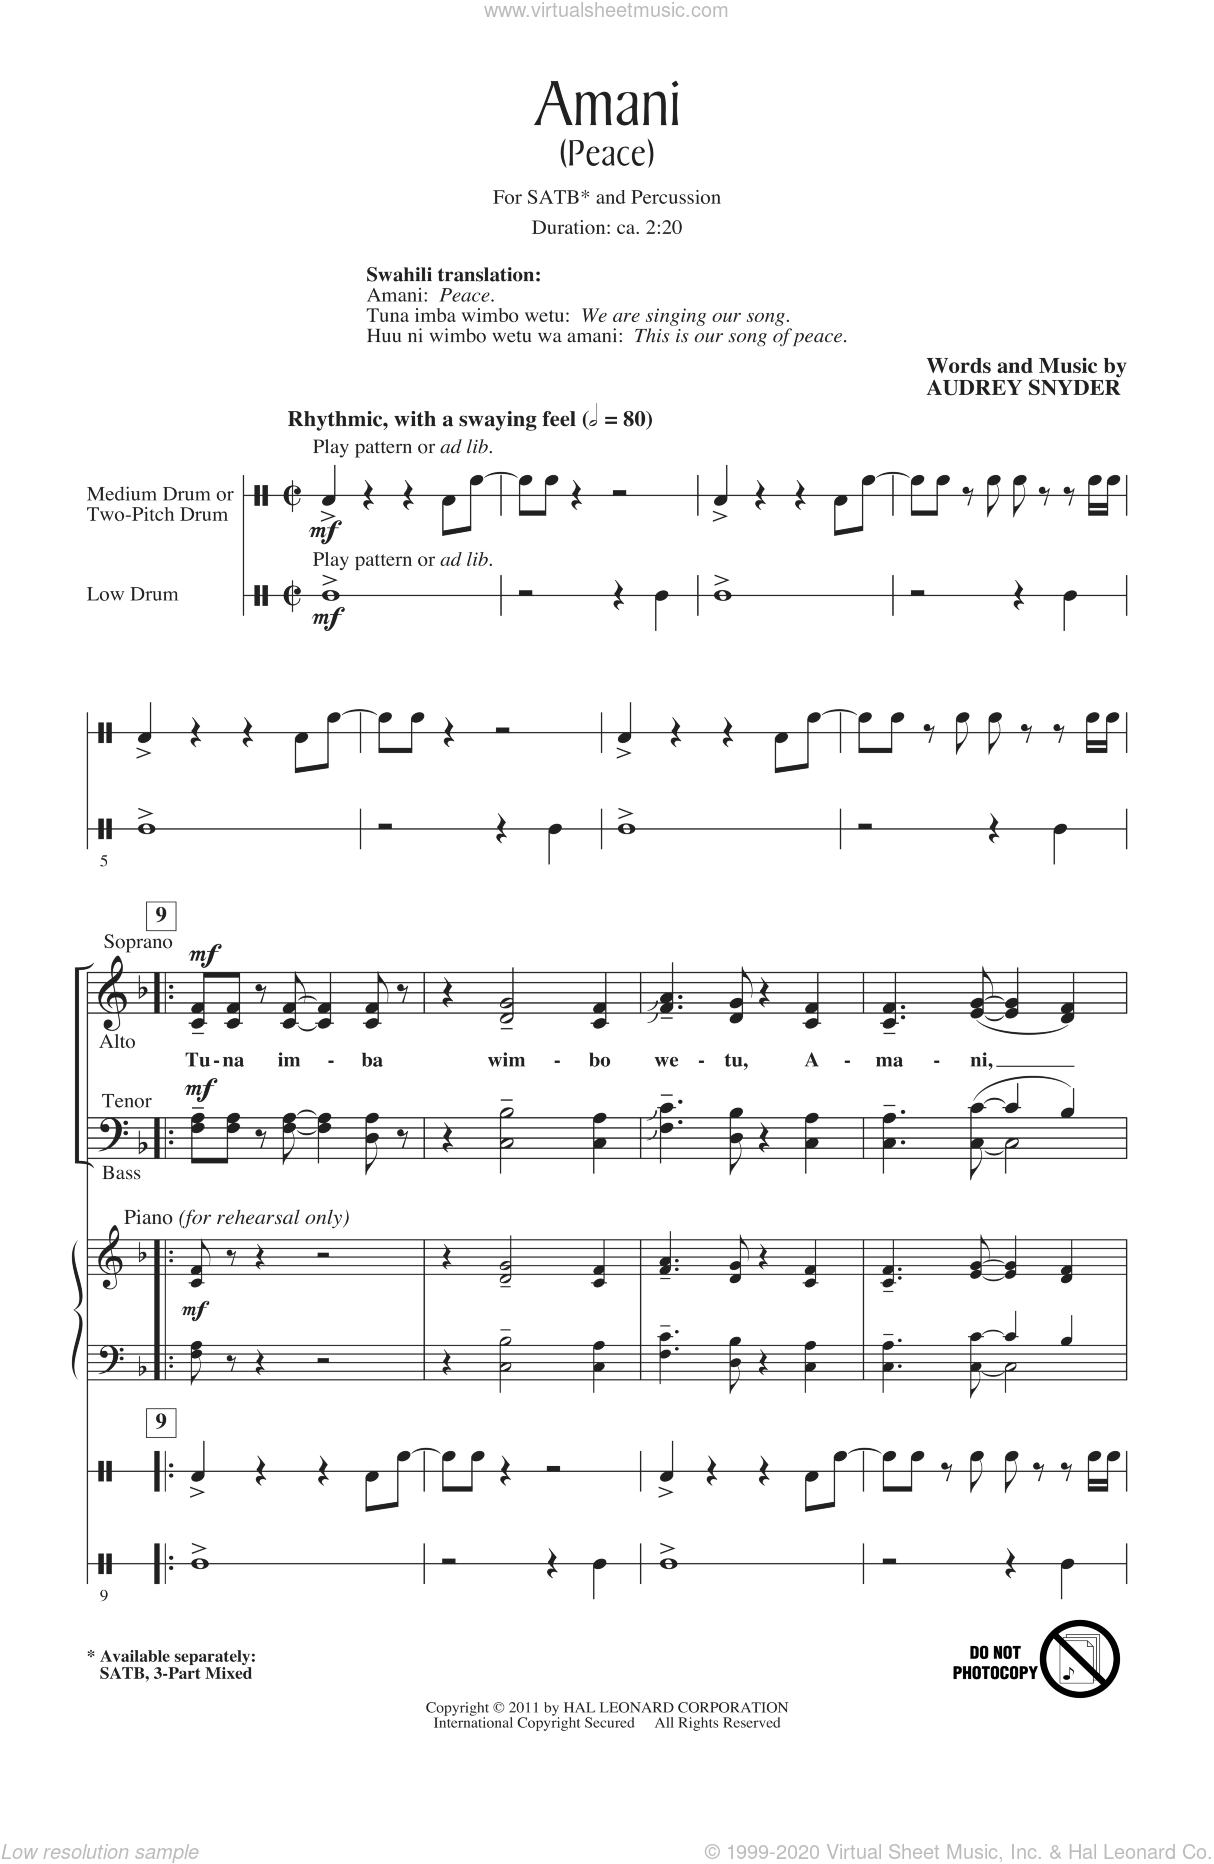 Amani (Peace) sheet music for choir and piano (SATB) by Audrey Snyder